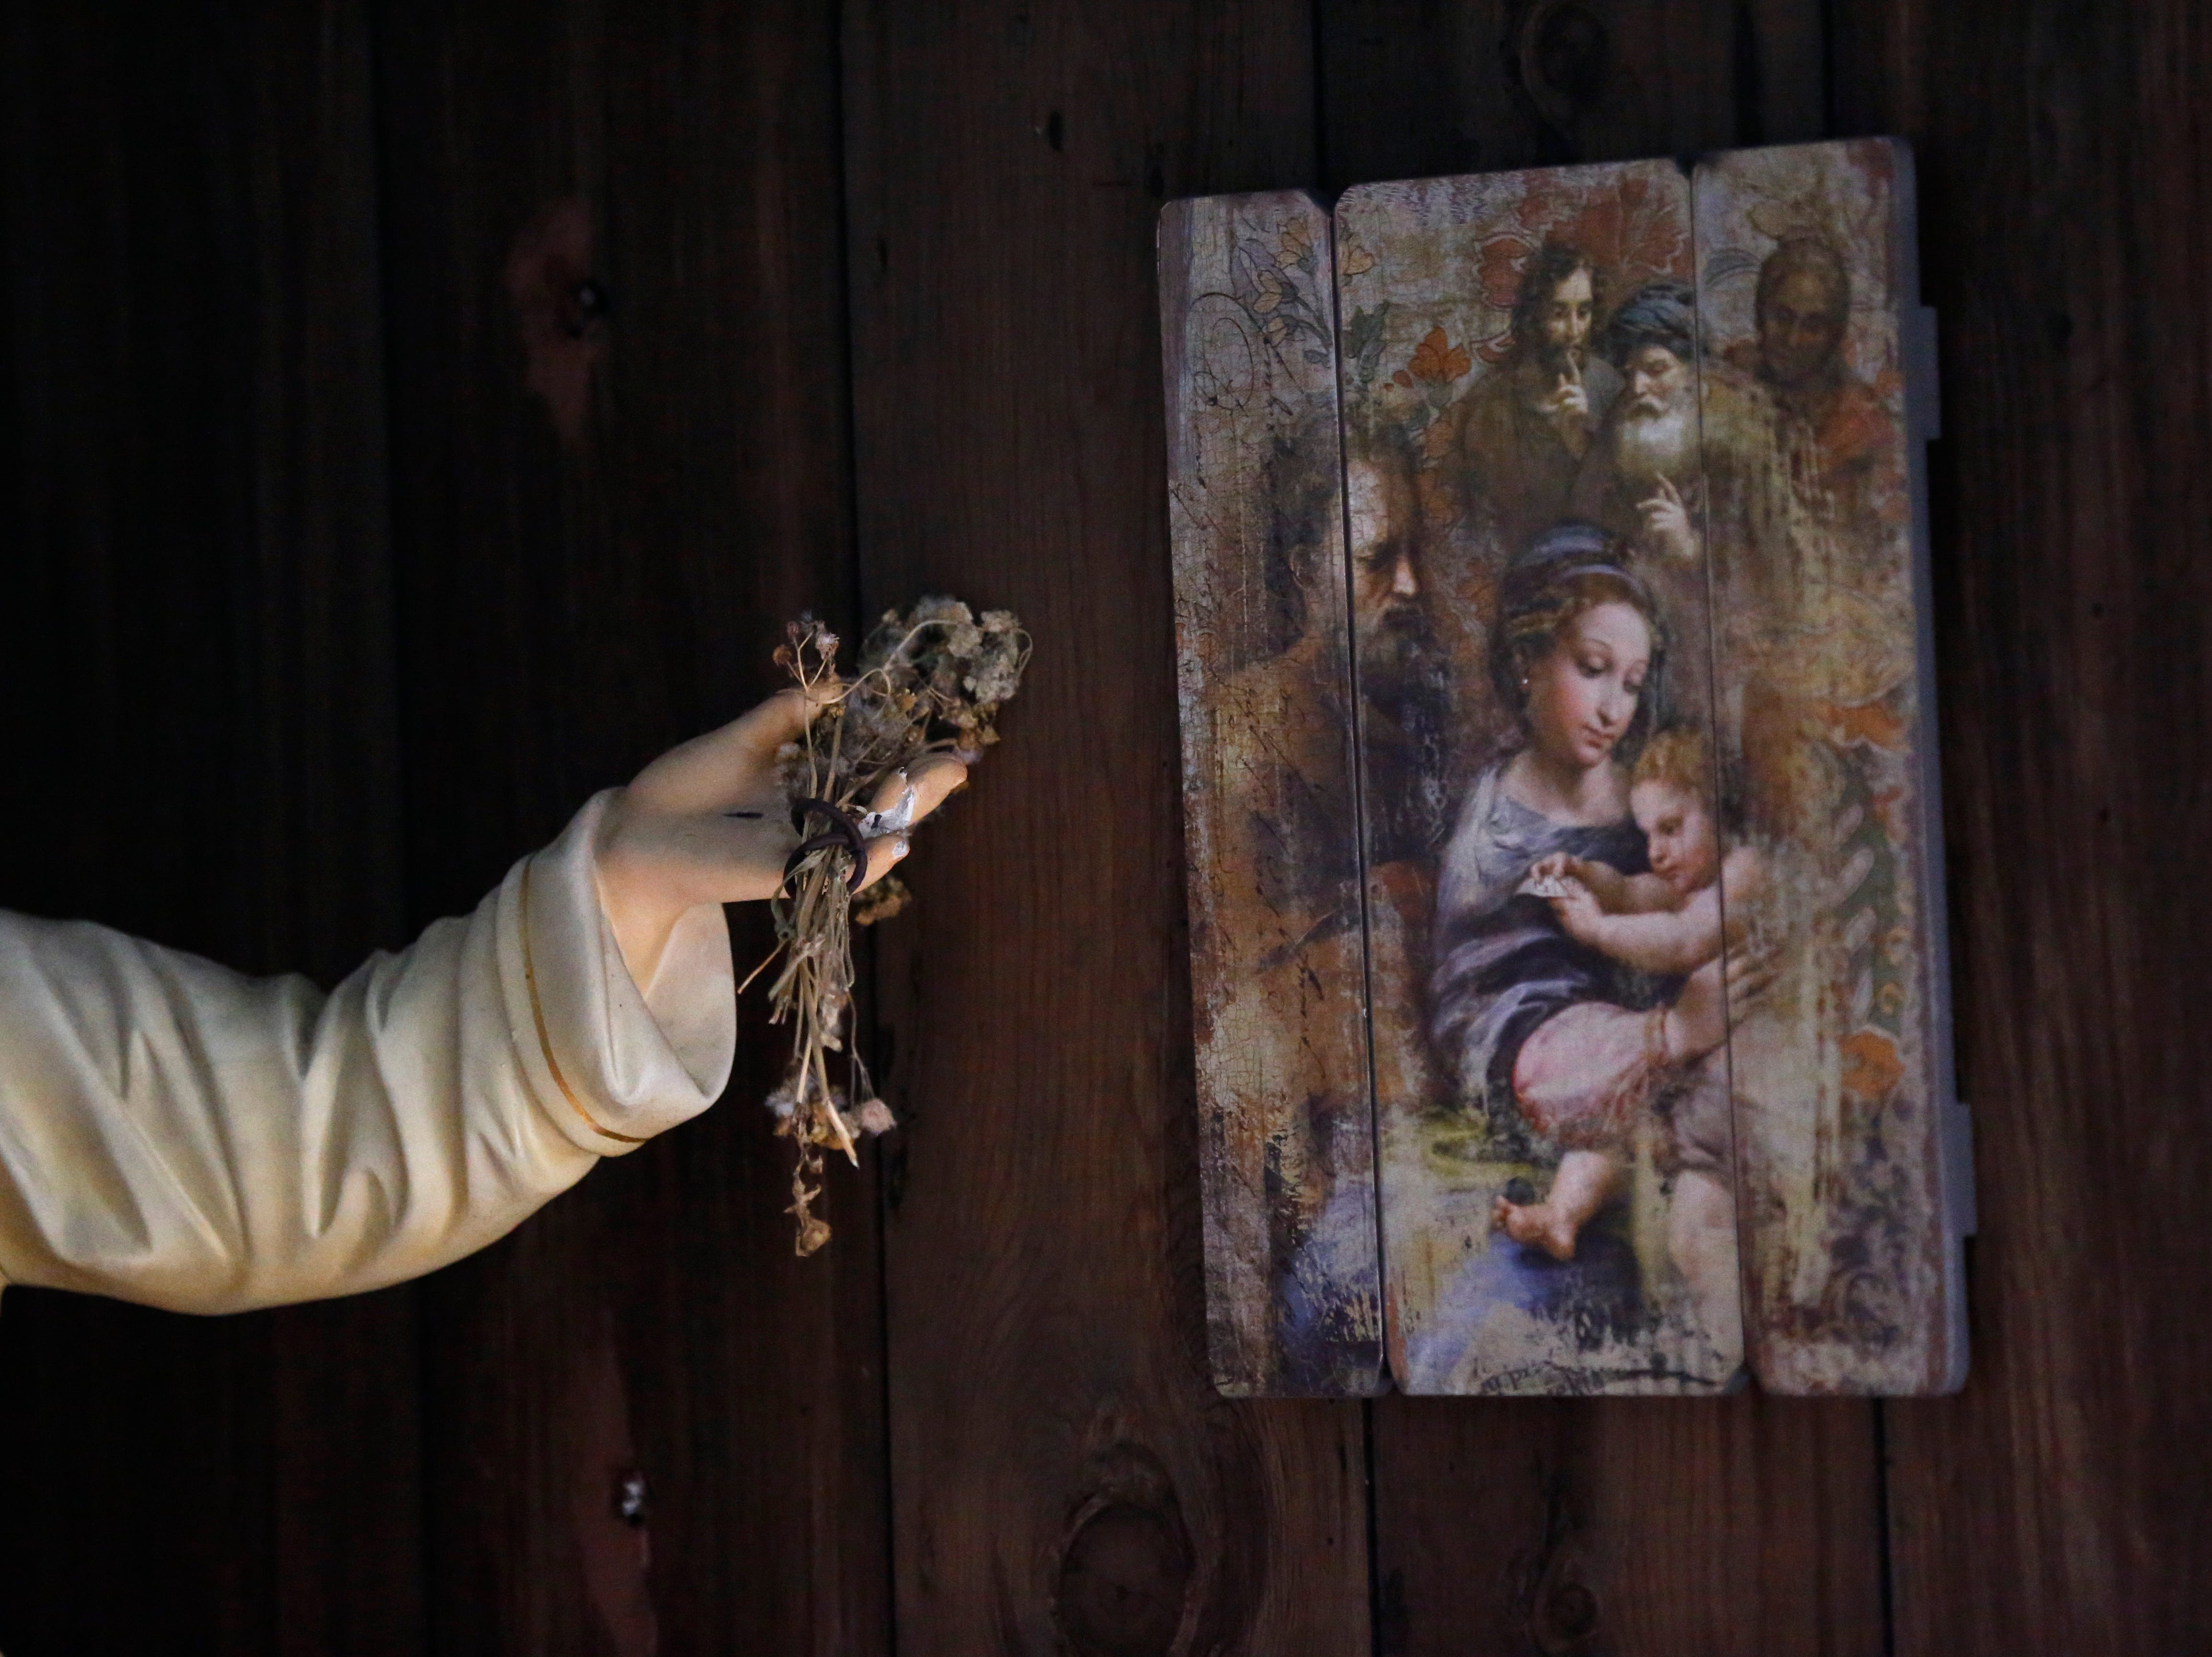 A statue of Jesus has dried flowers placed in its hand, with religious art adorning the walls, inside Our Lady of Blind River Chapel, along Blind River, in St. James Parish, La., Tuesday, April 9, 2019. The chapel was built decades ago by Martha Deroche and her husband, Bobby, after Martha had a vision of Jesus kneeling by a rock. Over the years, people have stopped by in boats or kayaks to pray in the one-room chapel. But floods over the years have damaged the little church, and the couple's grandson Lance Weber had to close it about two years ago out of safety concerns. (AP Photo/Gerald Herbert)